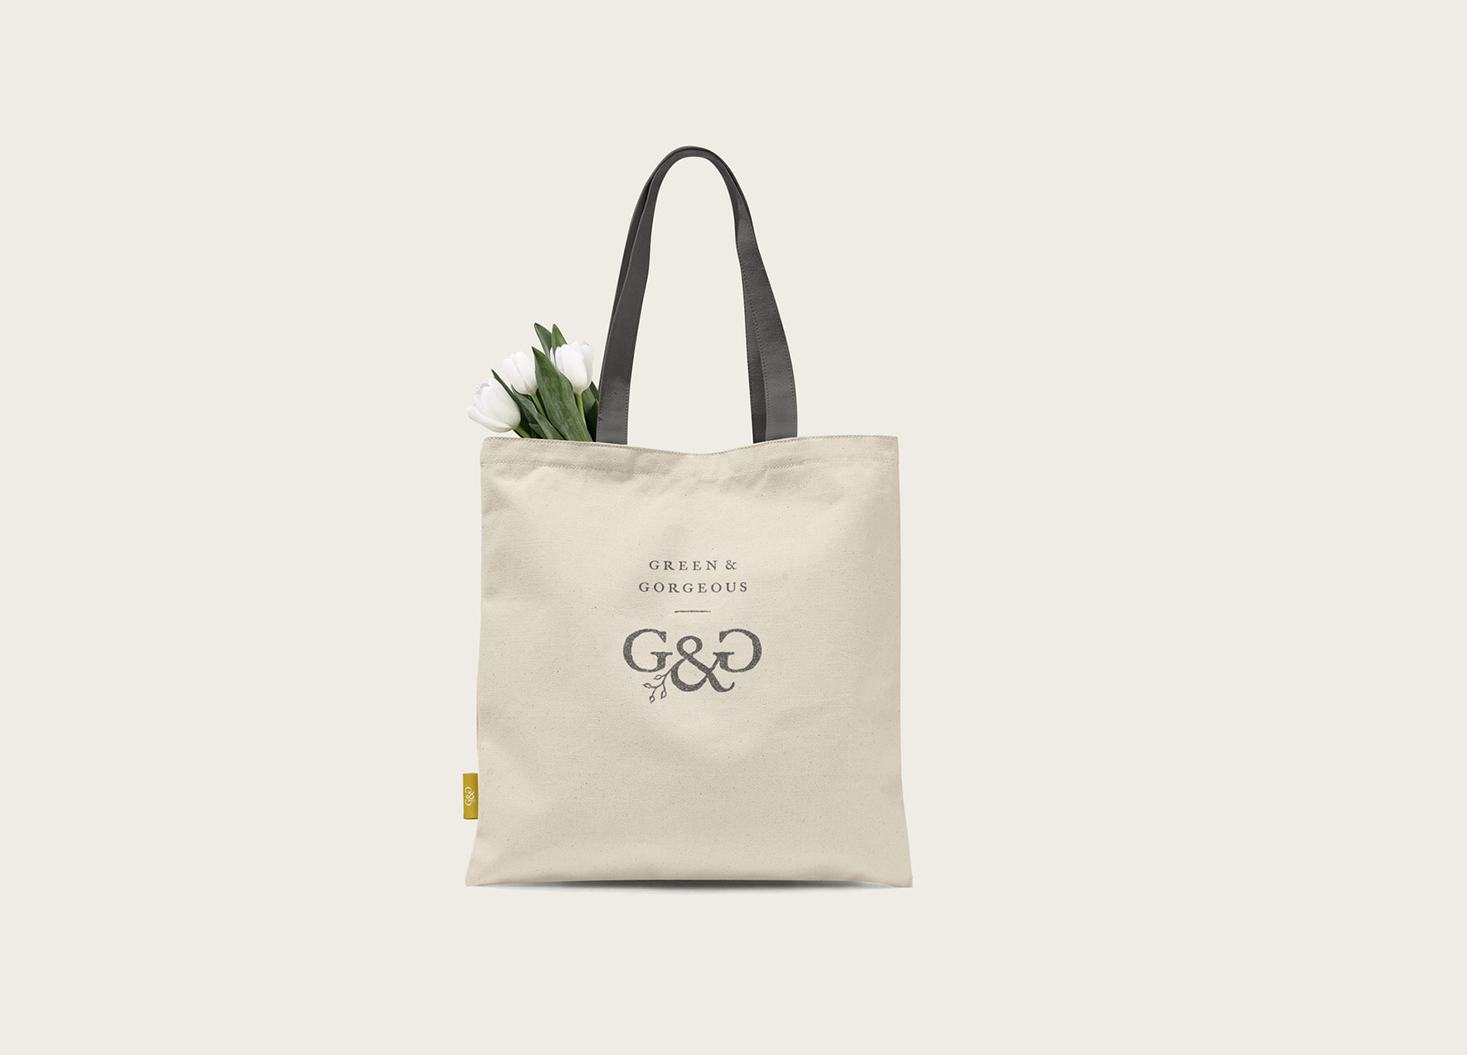 tote-bag-stationery-print-design.jpg